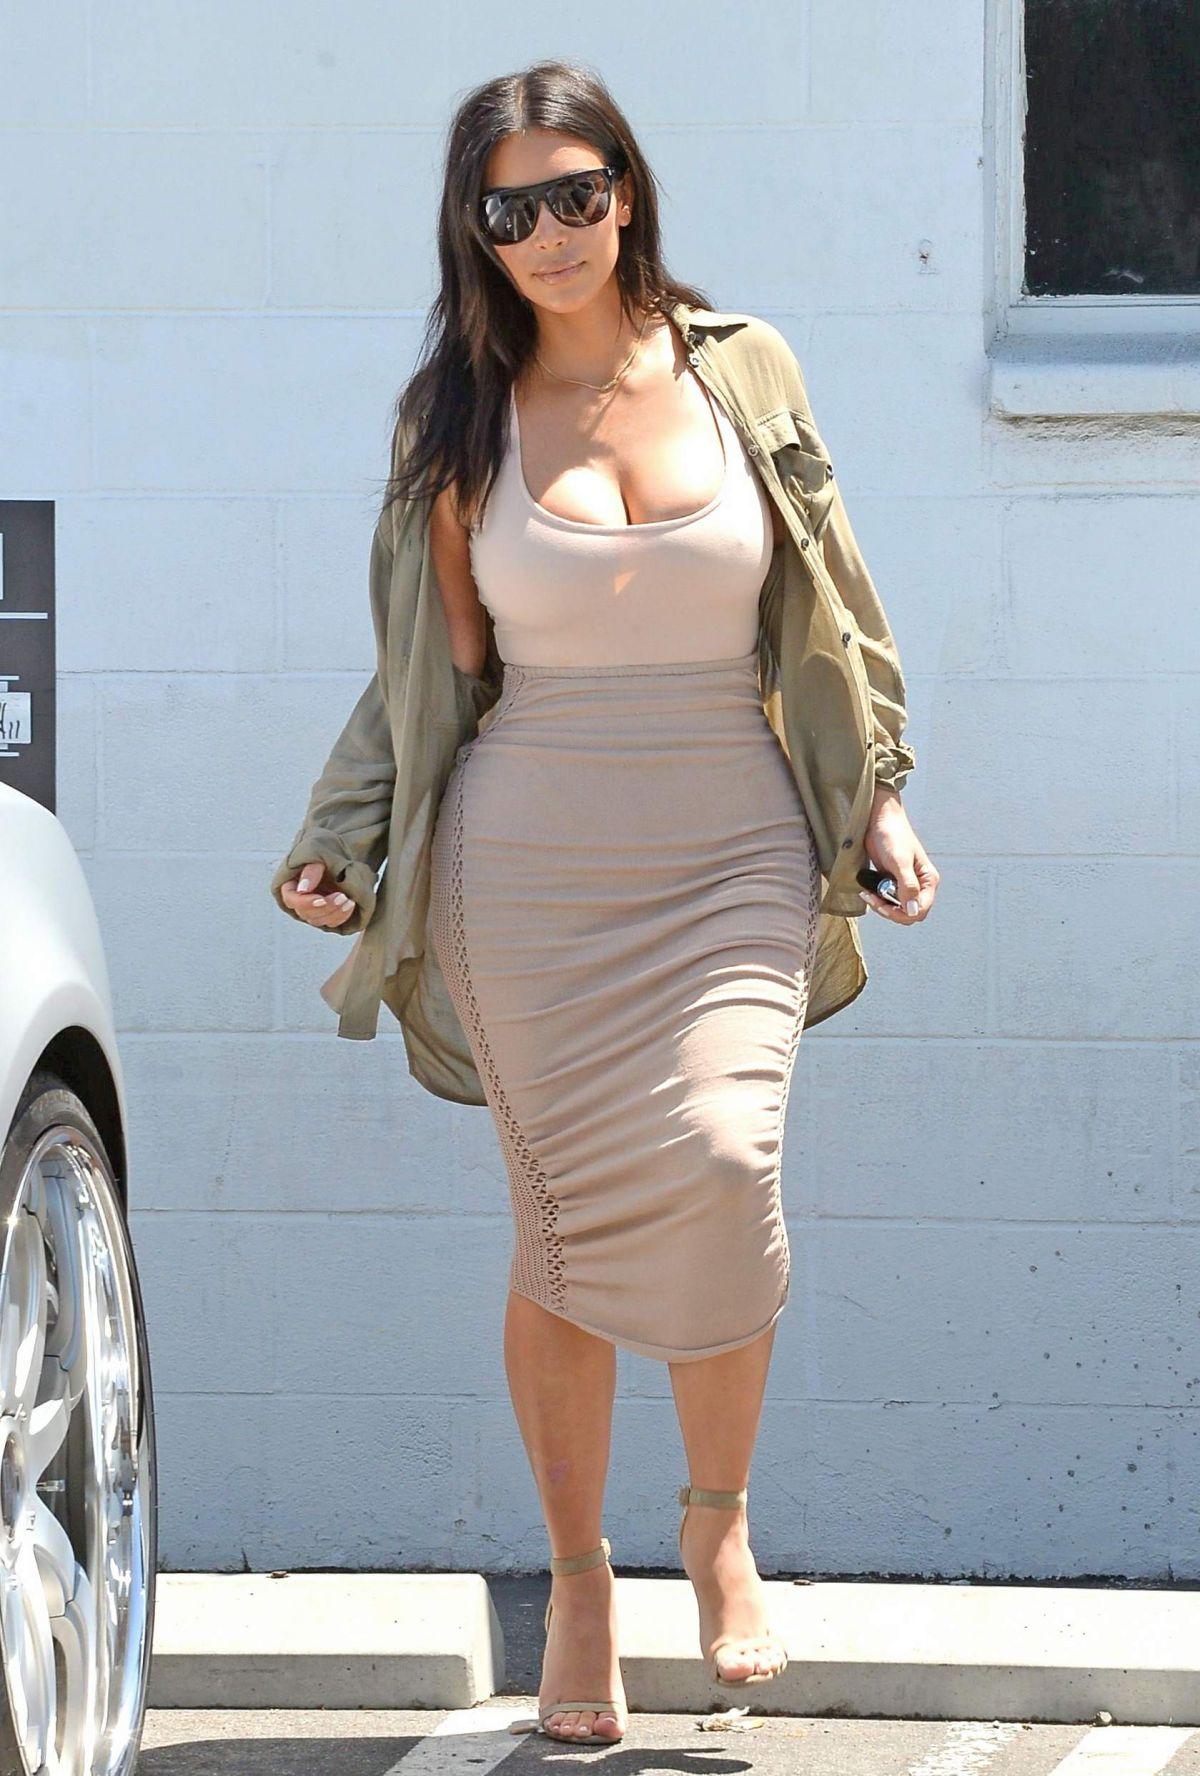 kim kardashian - photo #12